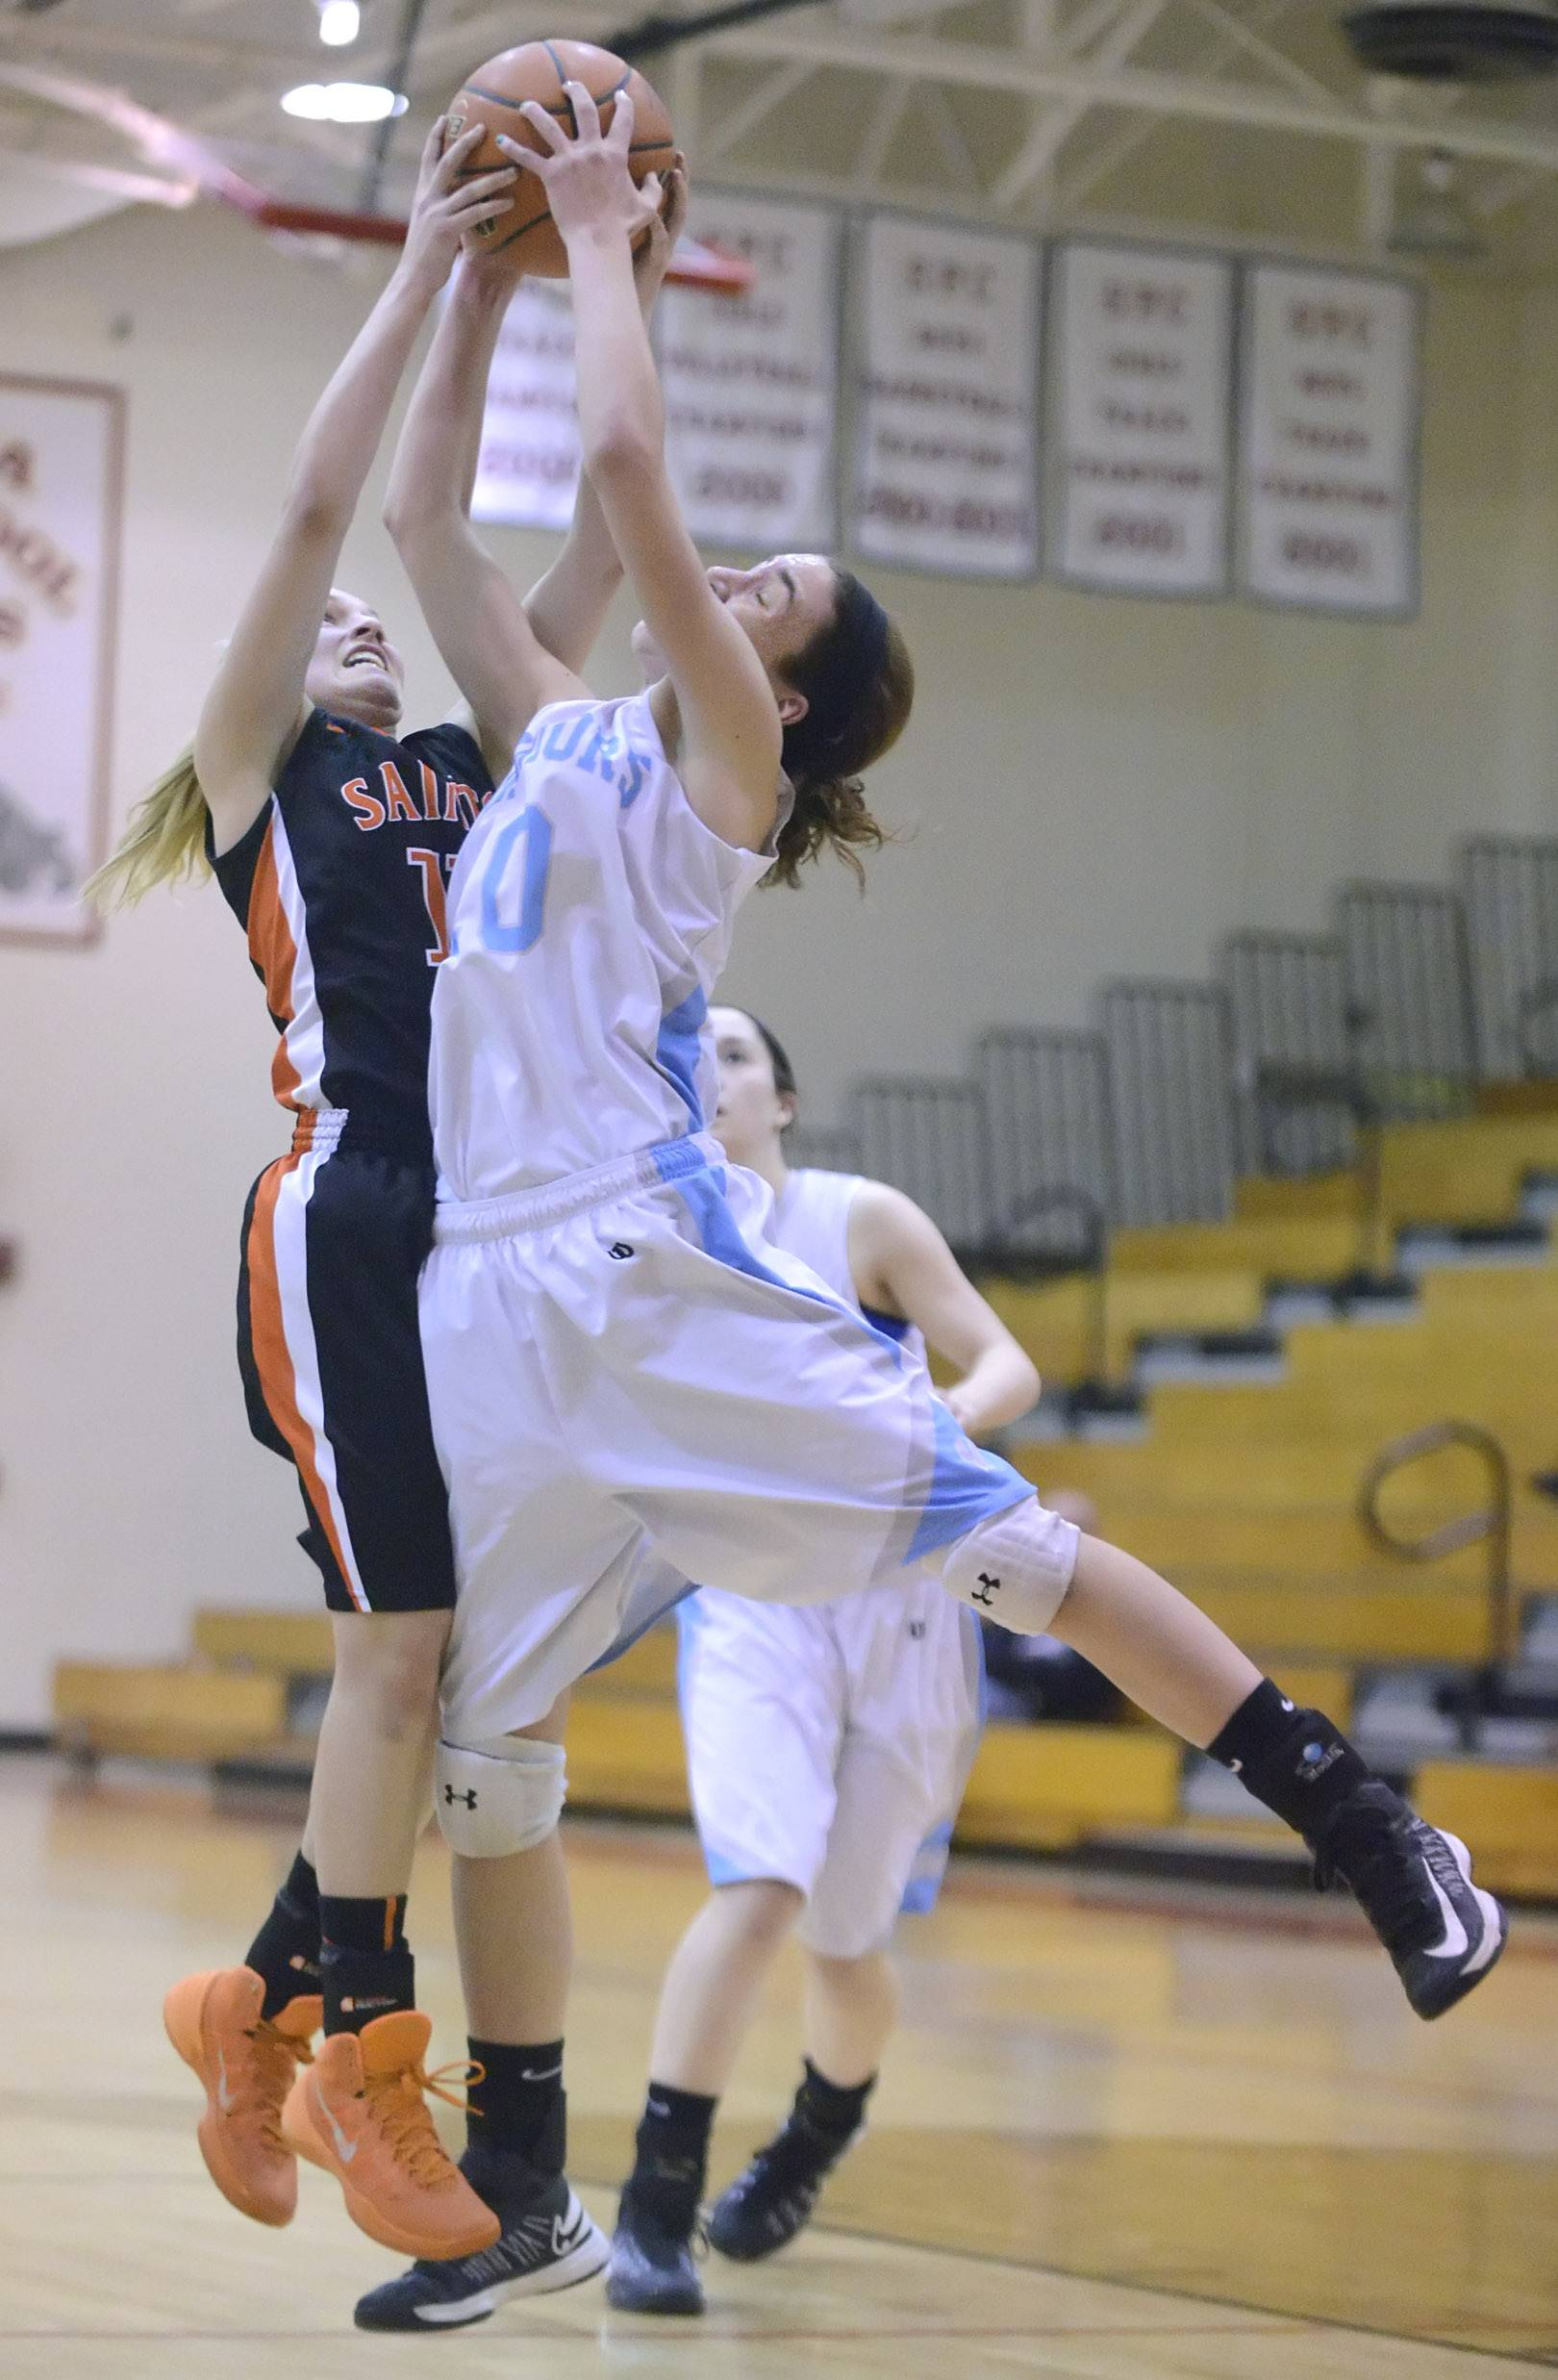 St. Charles East's Katelyn Claussner and Willowbrook's Molly Krawczykowski both leap for a rebound in the second quarter on Tuesday, February 18.